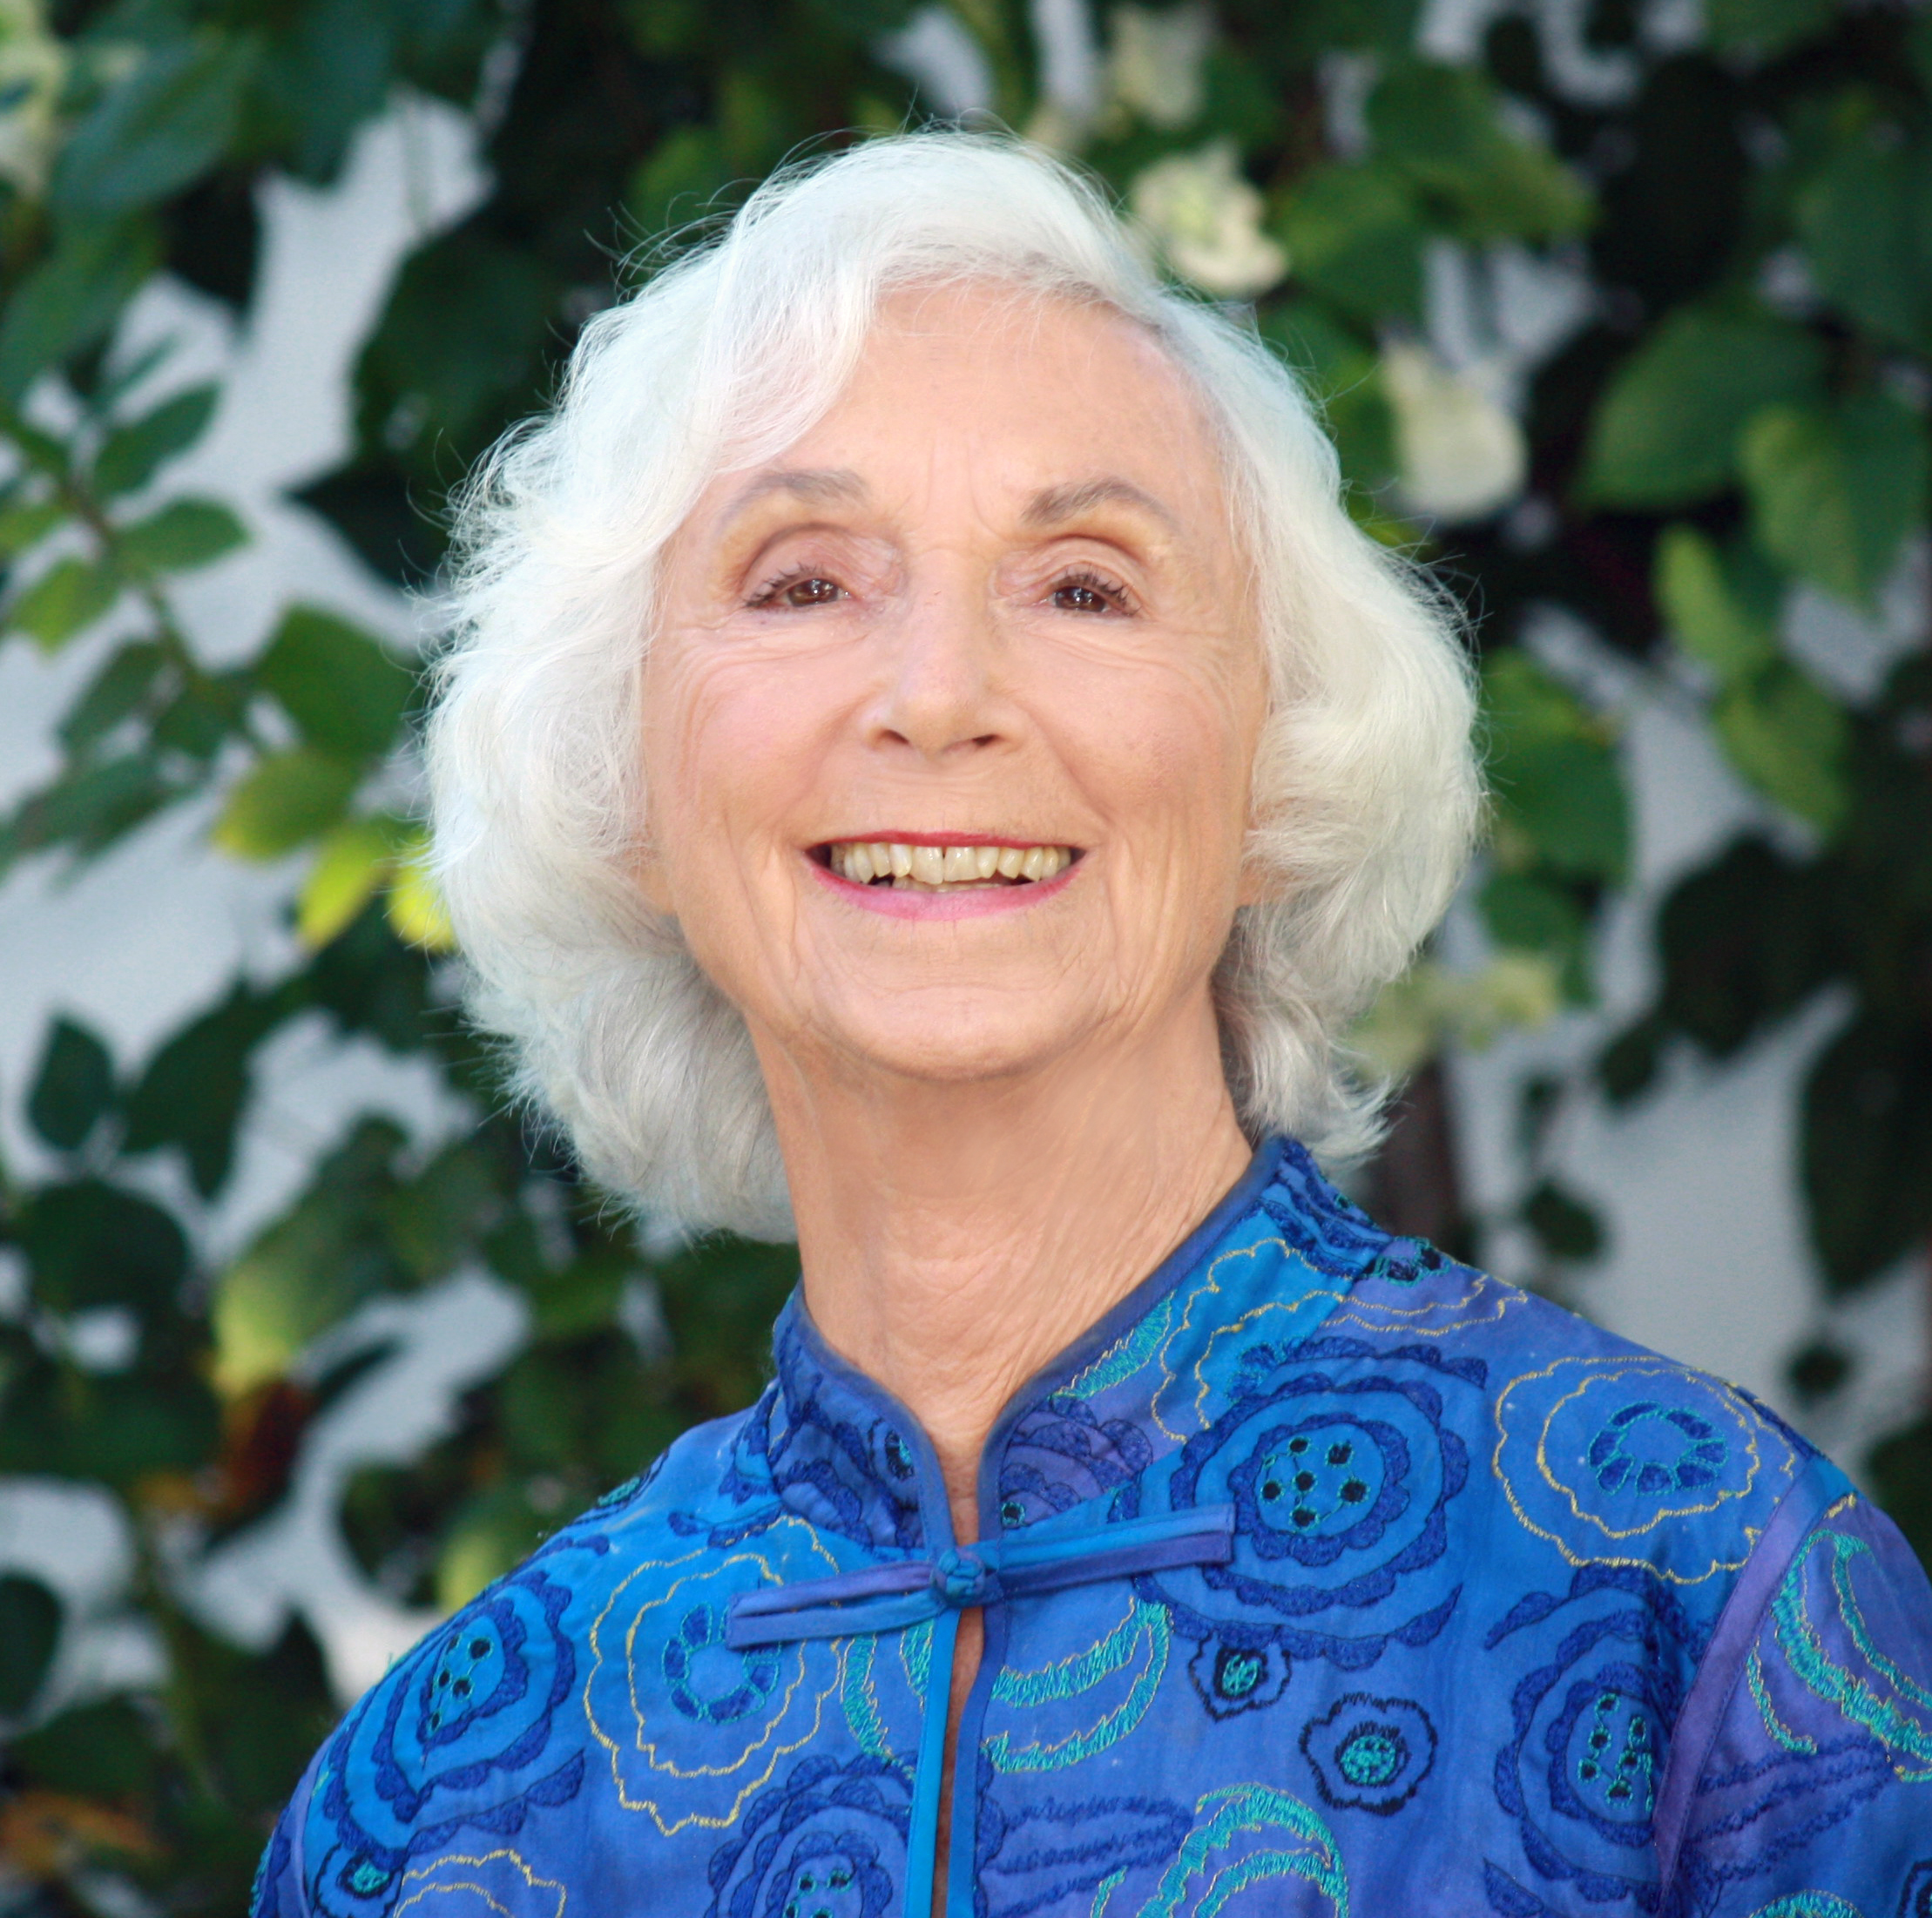 """Barbara Marx Hubbard has been called """"the voice for conscious evolution of our time,"""" by Deepak Chopra. She is the subject of Neale Donald Walsh's book """"The Mother of Invention."""""""